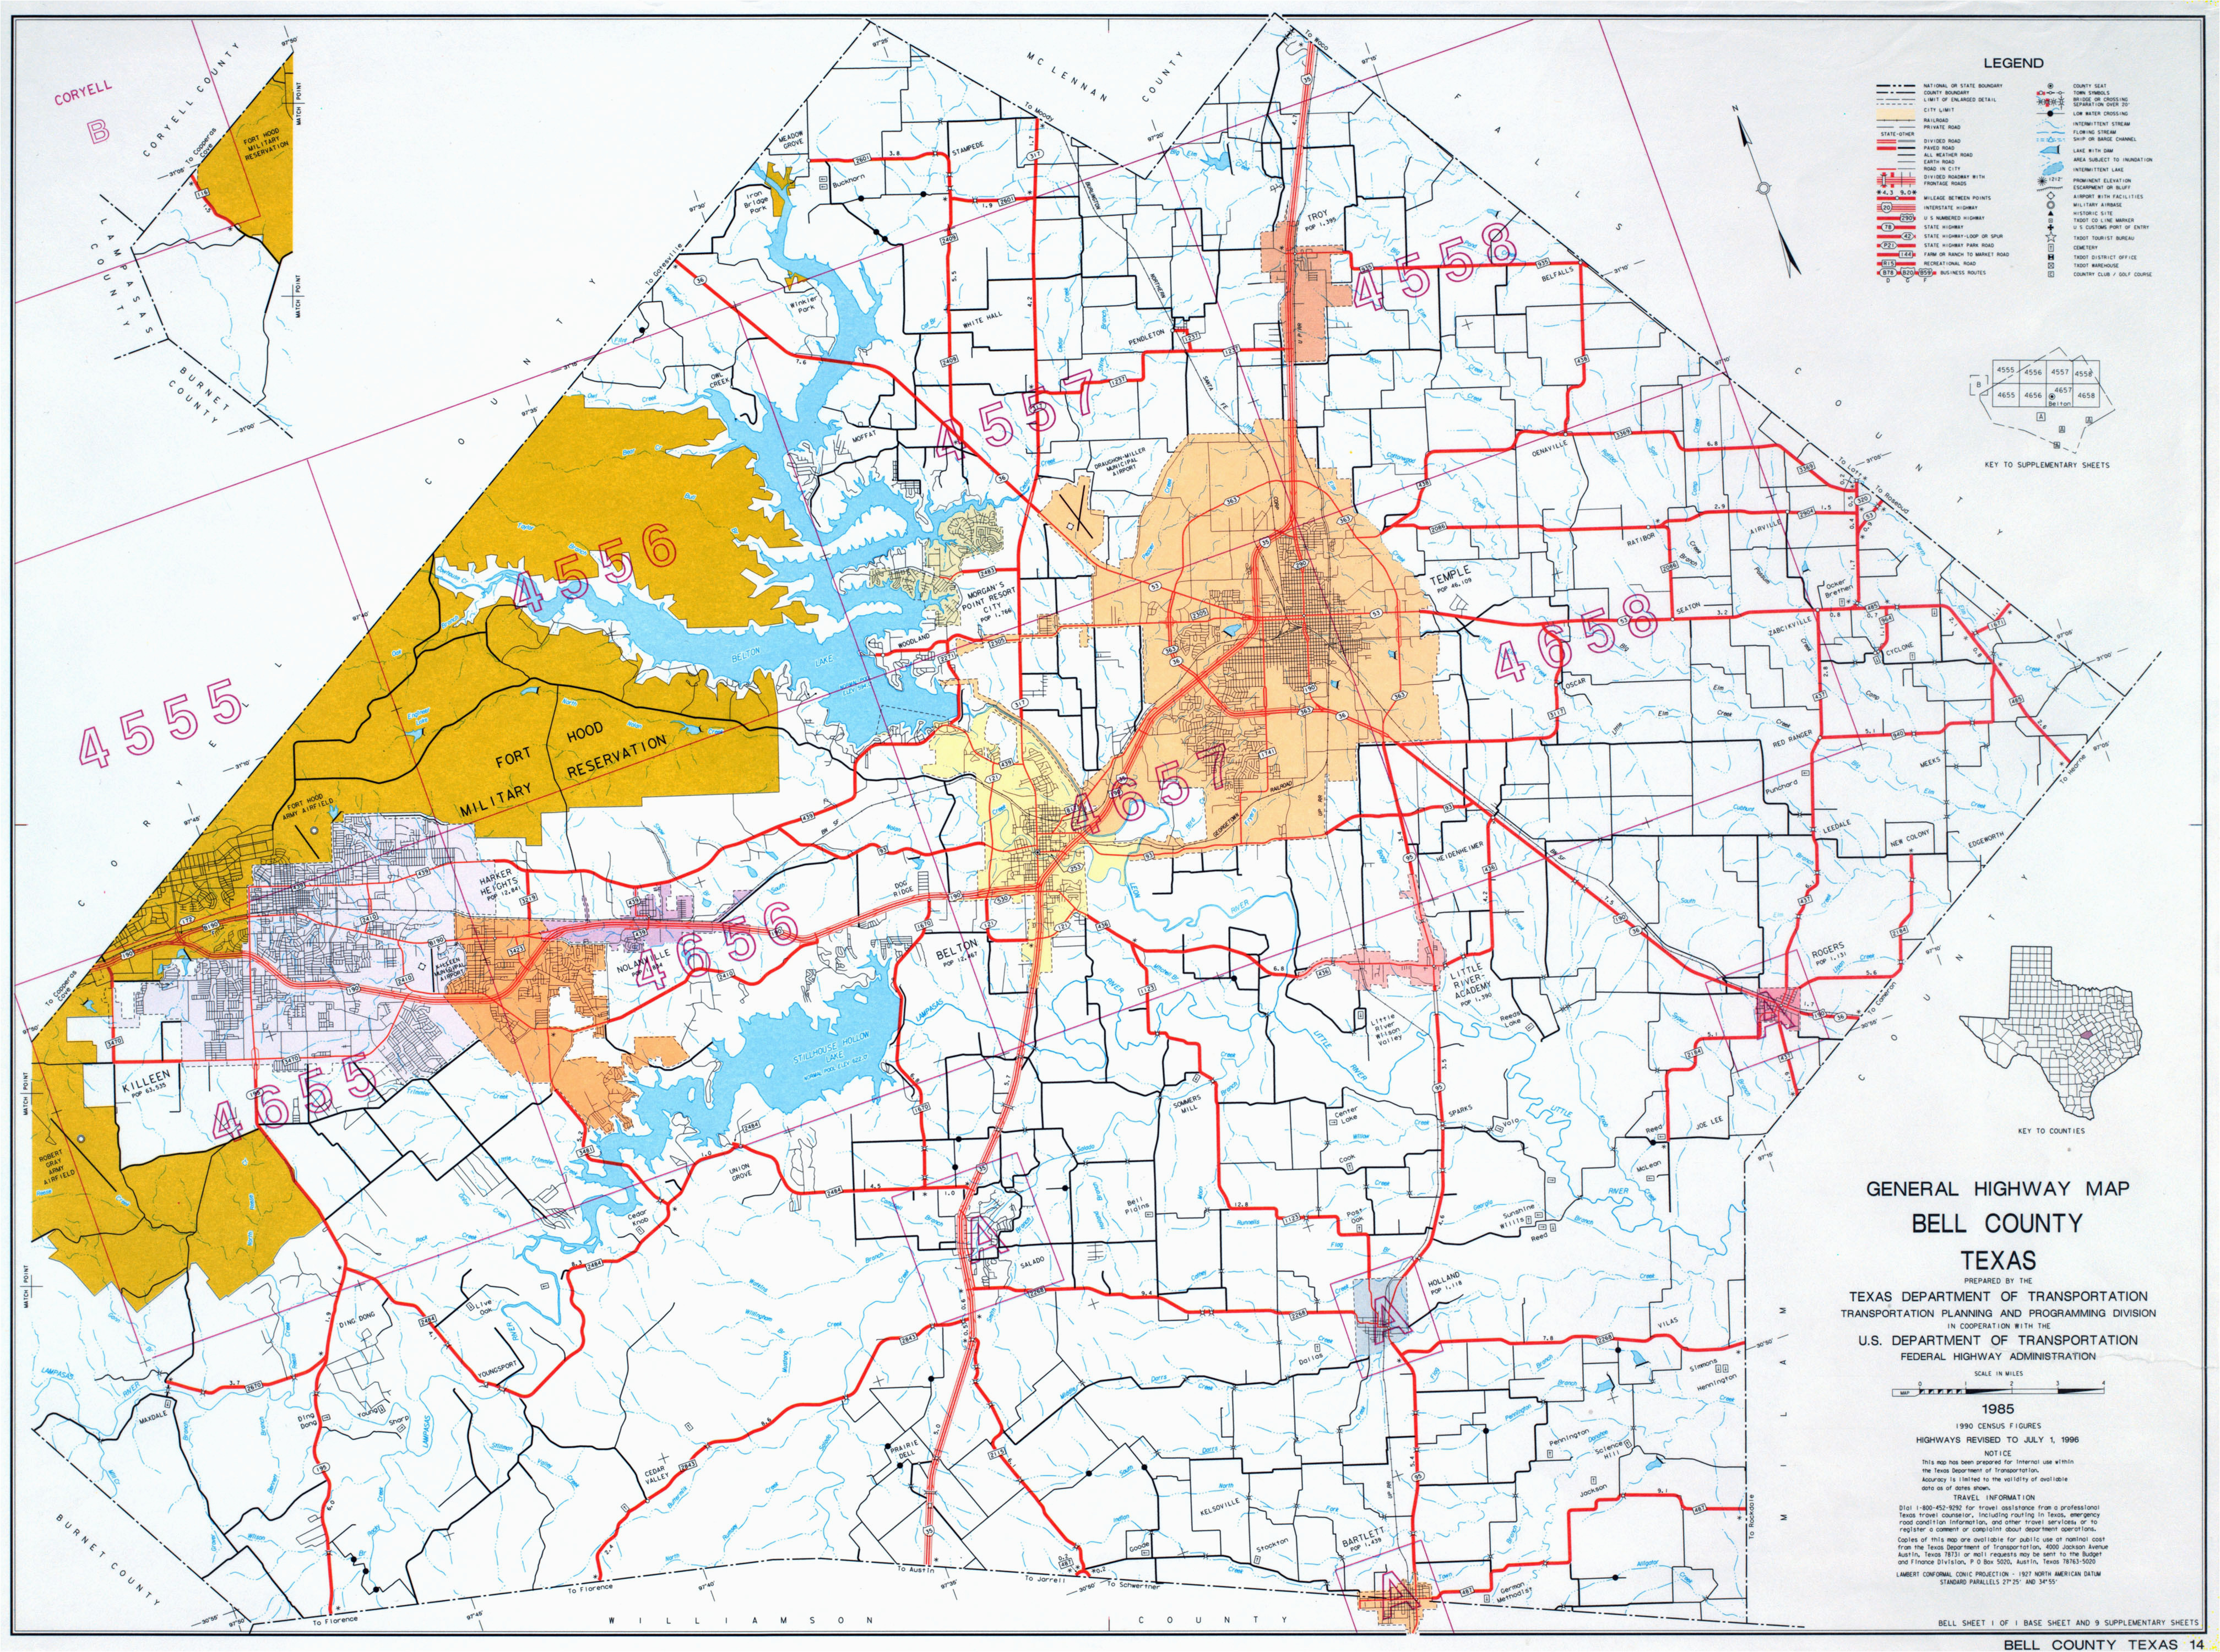 State Of Texas Map With Counties.Texas State Map With Counties Texas County Highway Maps Browse Perry